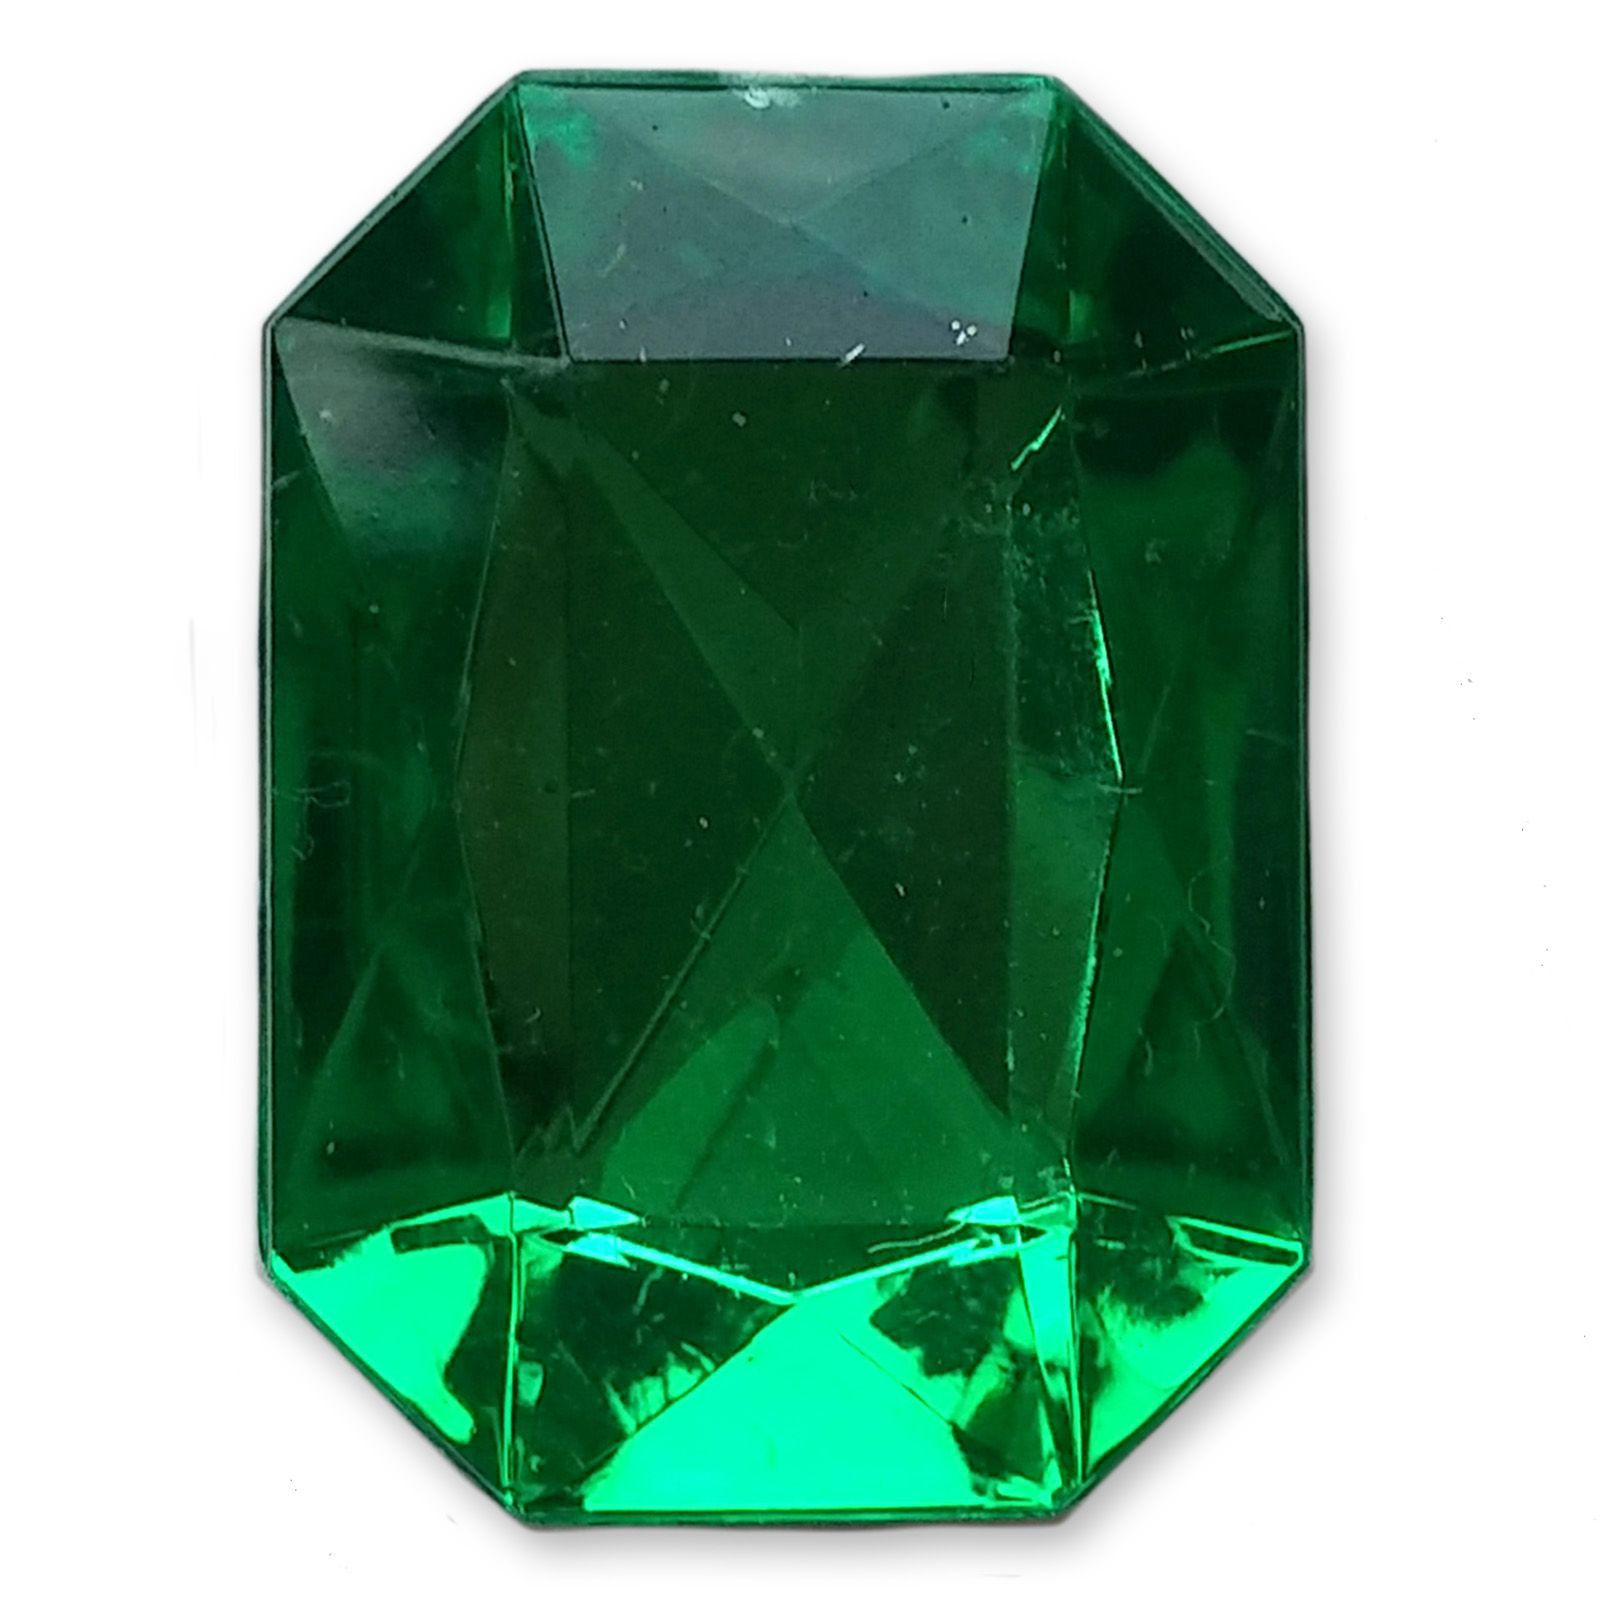 royalty gem emerald free crystal fashion photo jewelry image diamond jewel luxury stock stone